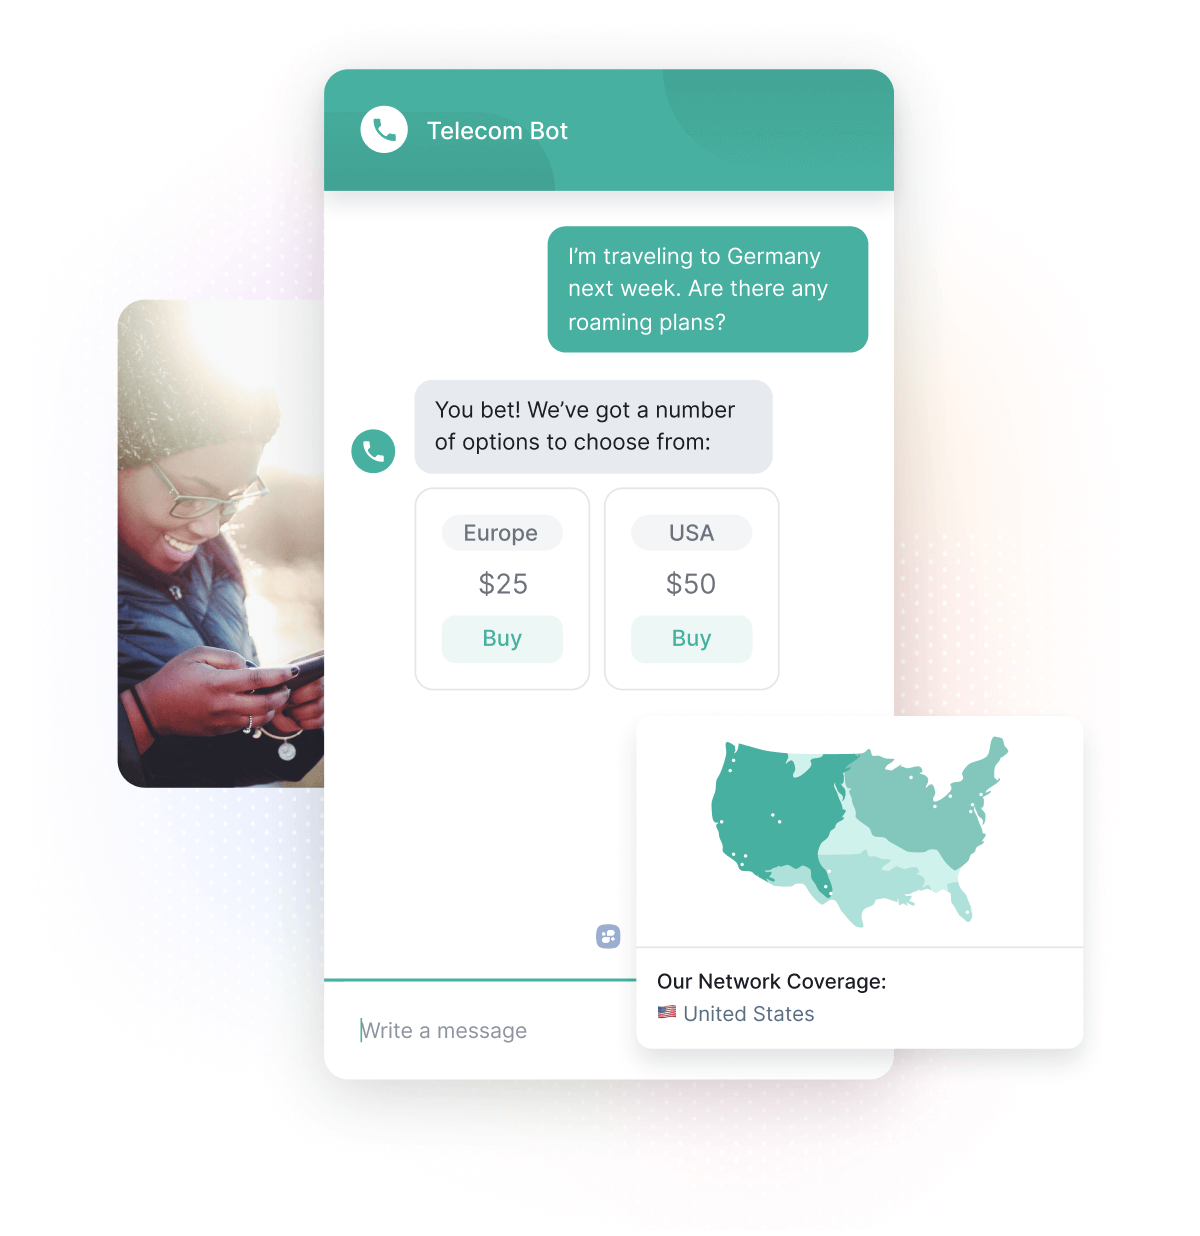 Woman Using Phone, Chatbot Suggesting Roaming Packages, Network Coverage in the United States.